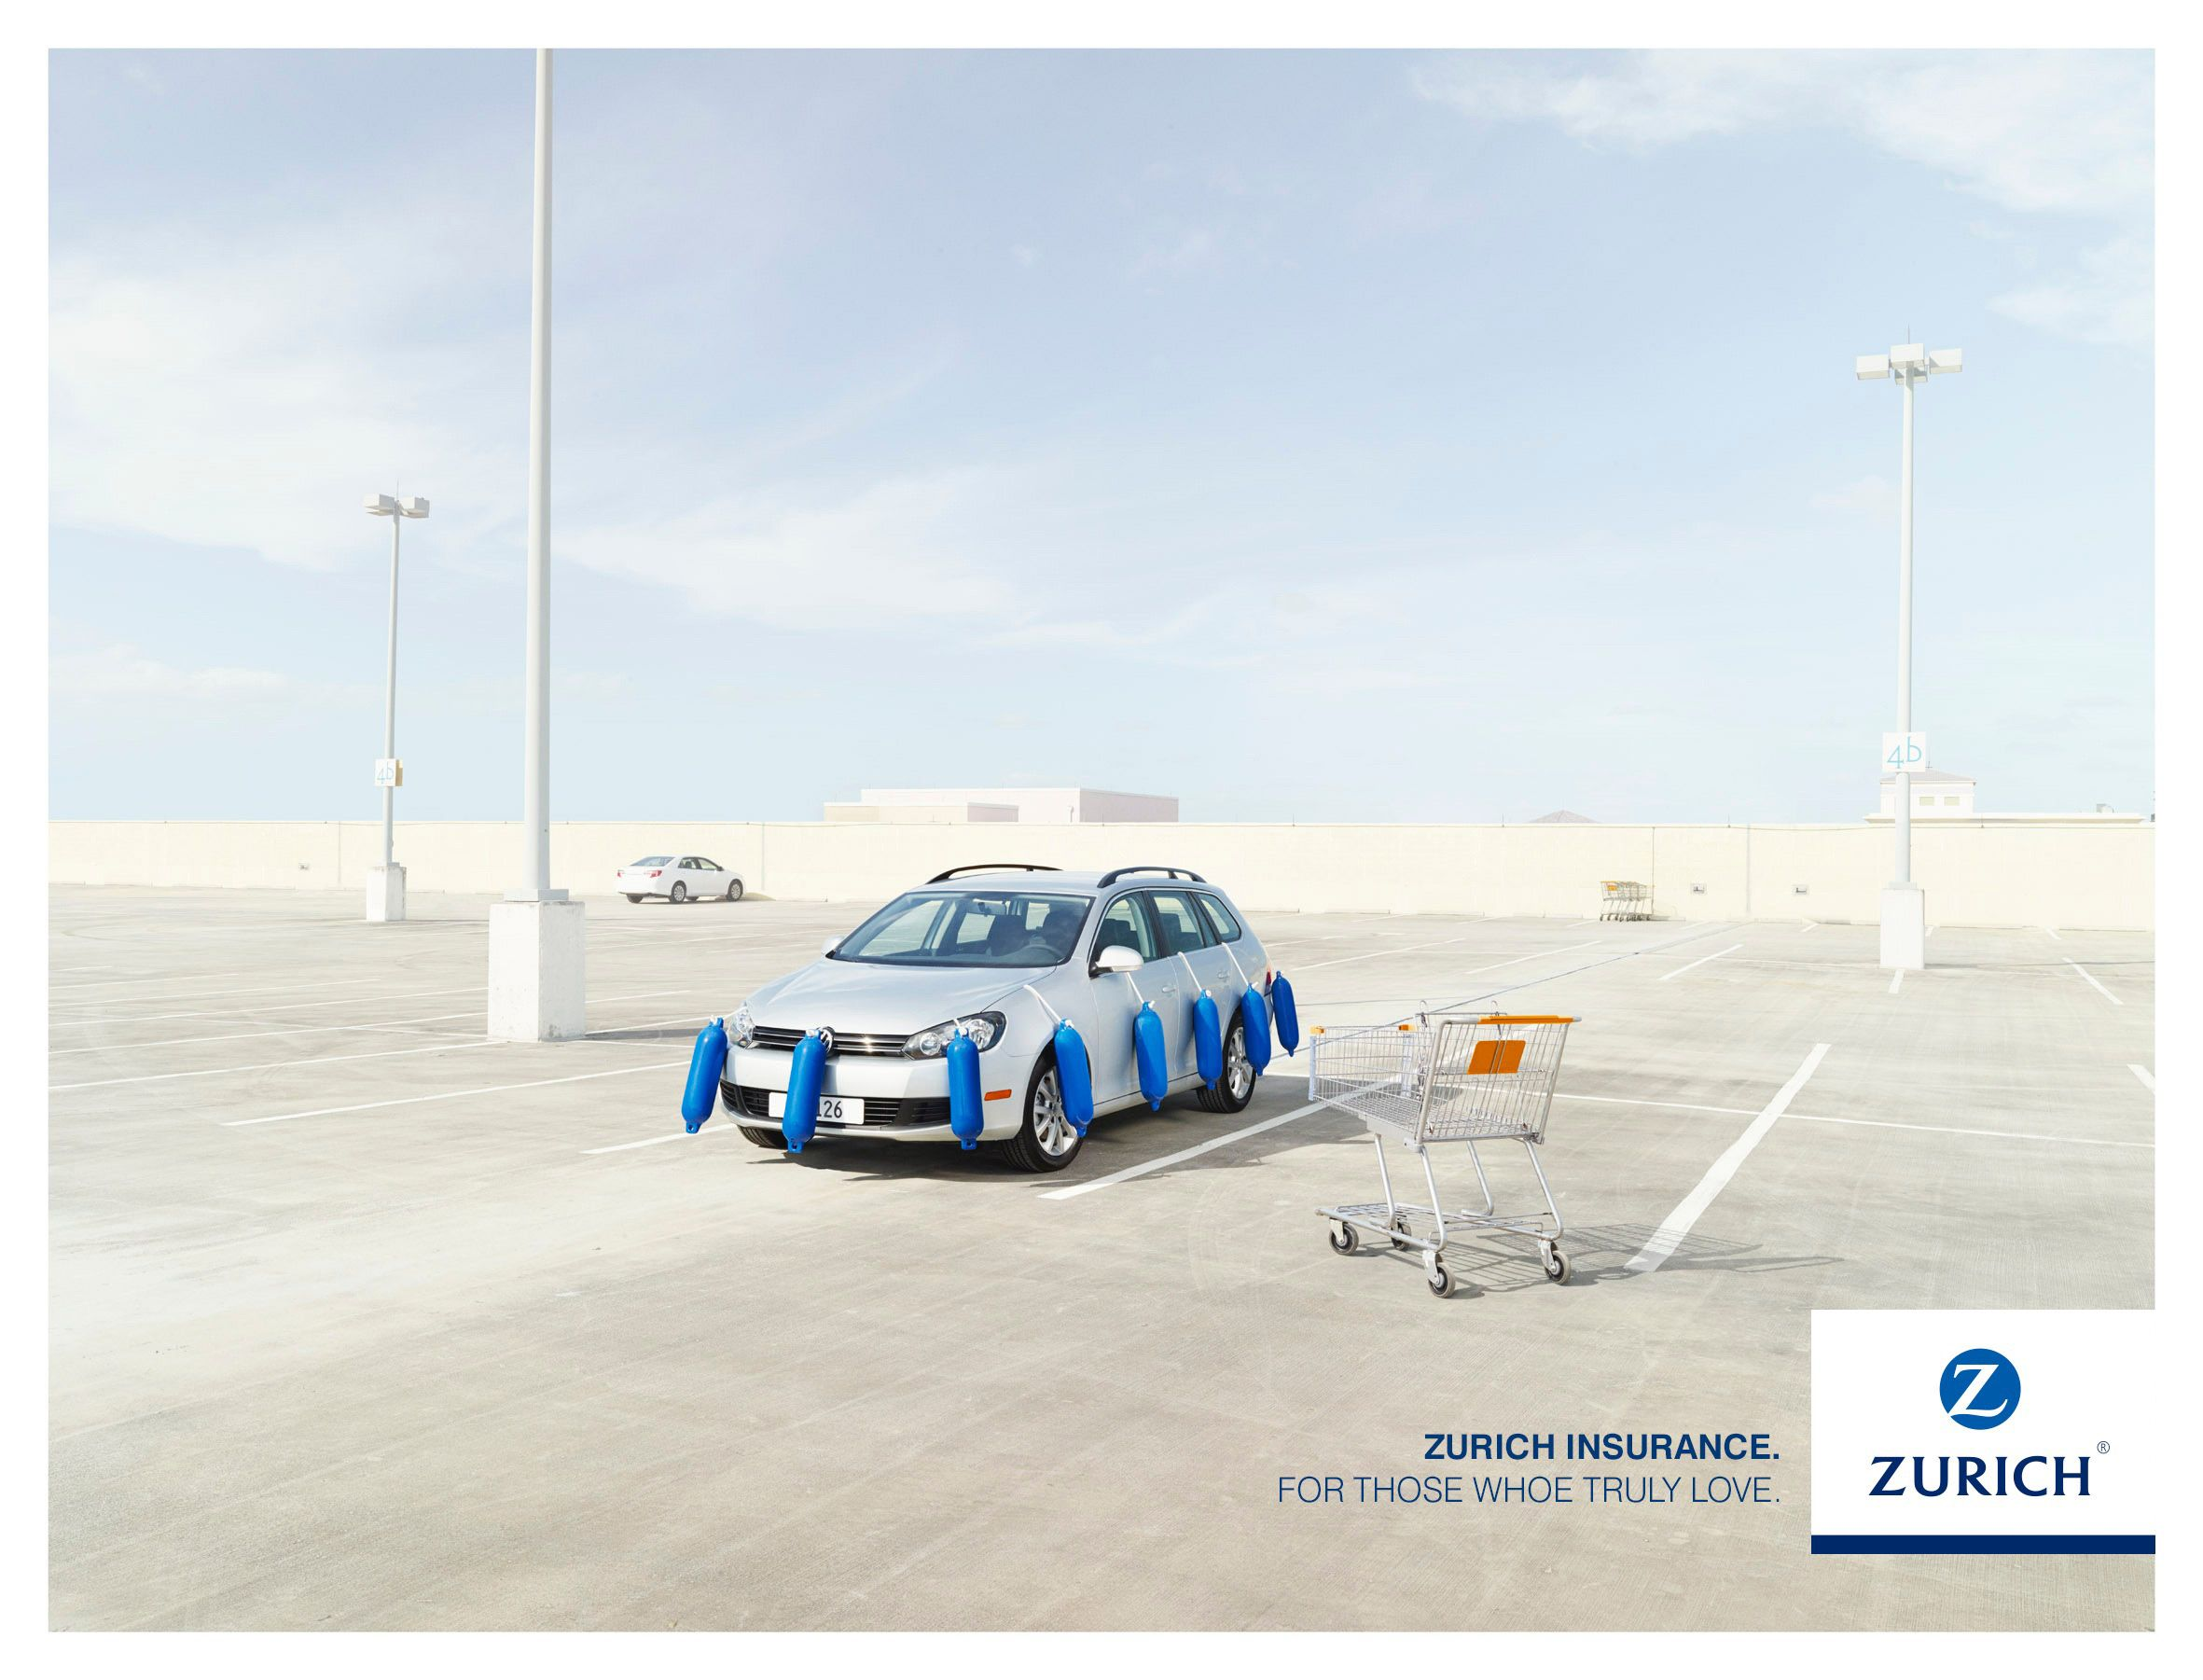 Adeevee Zurich Insurance Trolley Zurich Ad Of The World Car